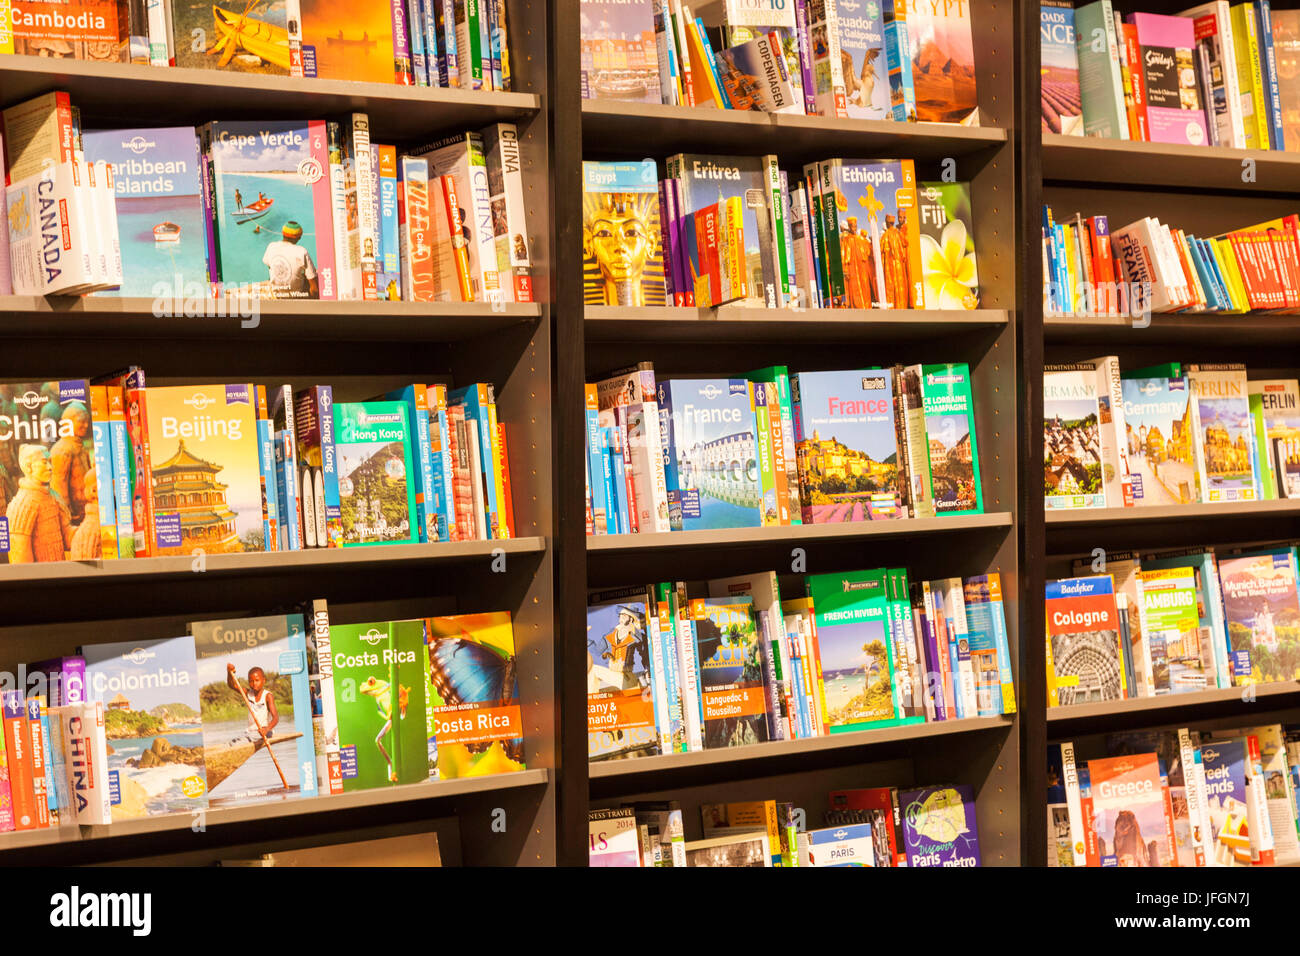 England, Bookshop display of Travel Guide Books - Stock Image